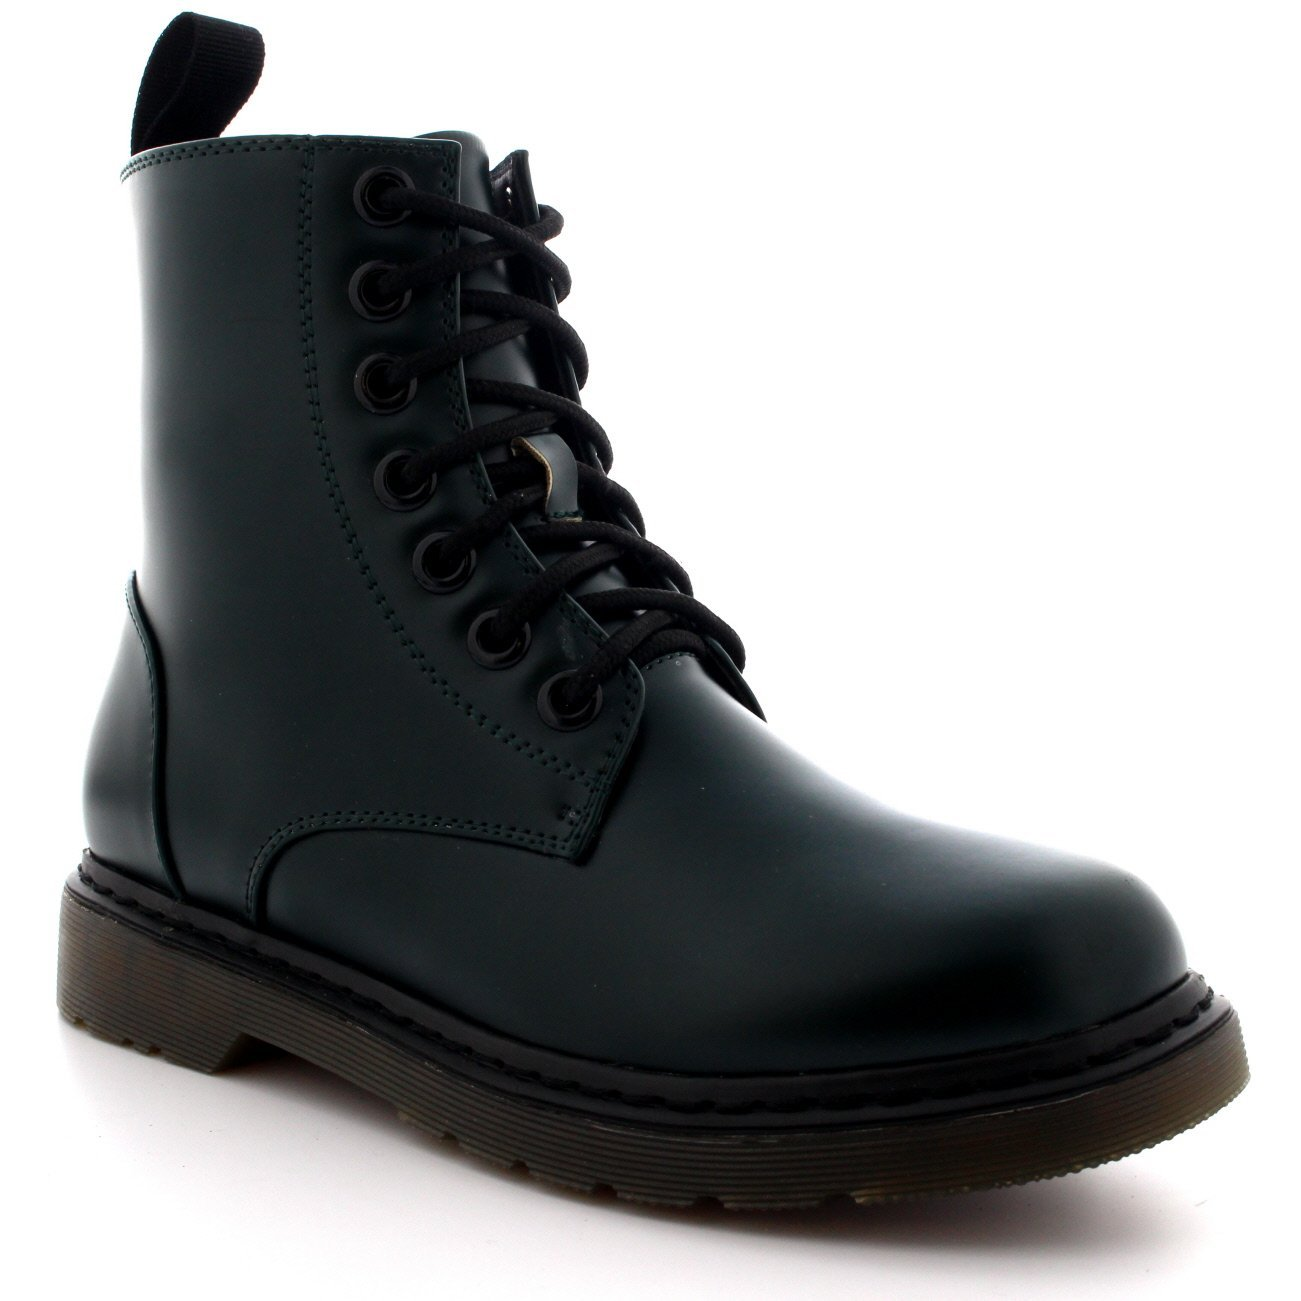 50eb6472386 Amazon.com: Mens Lace up Goth Punk Vintage Chunky Military Retro ...